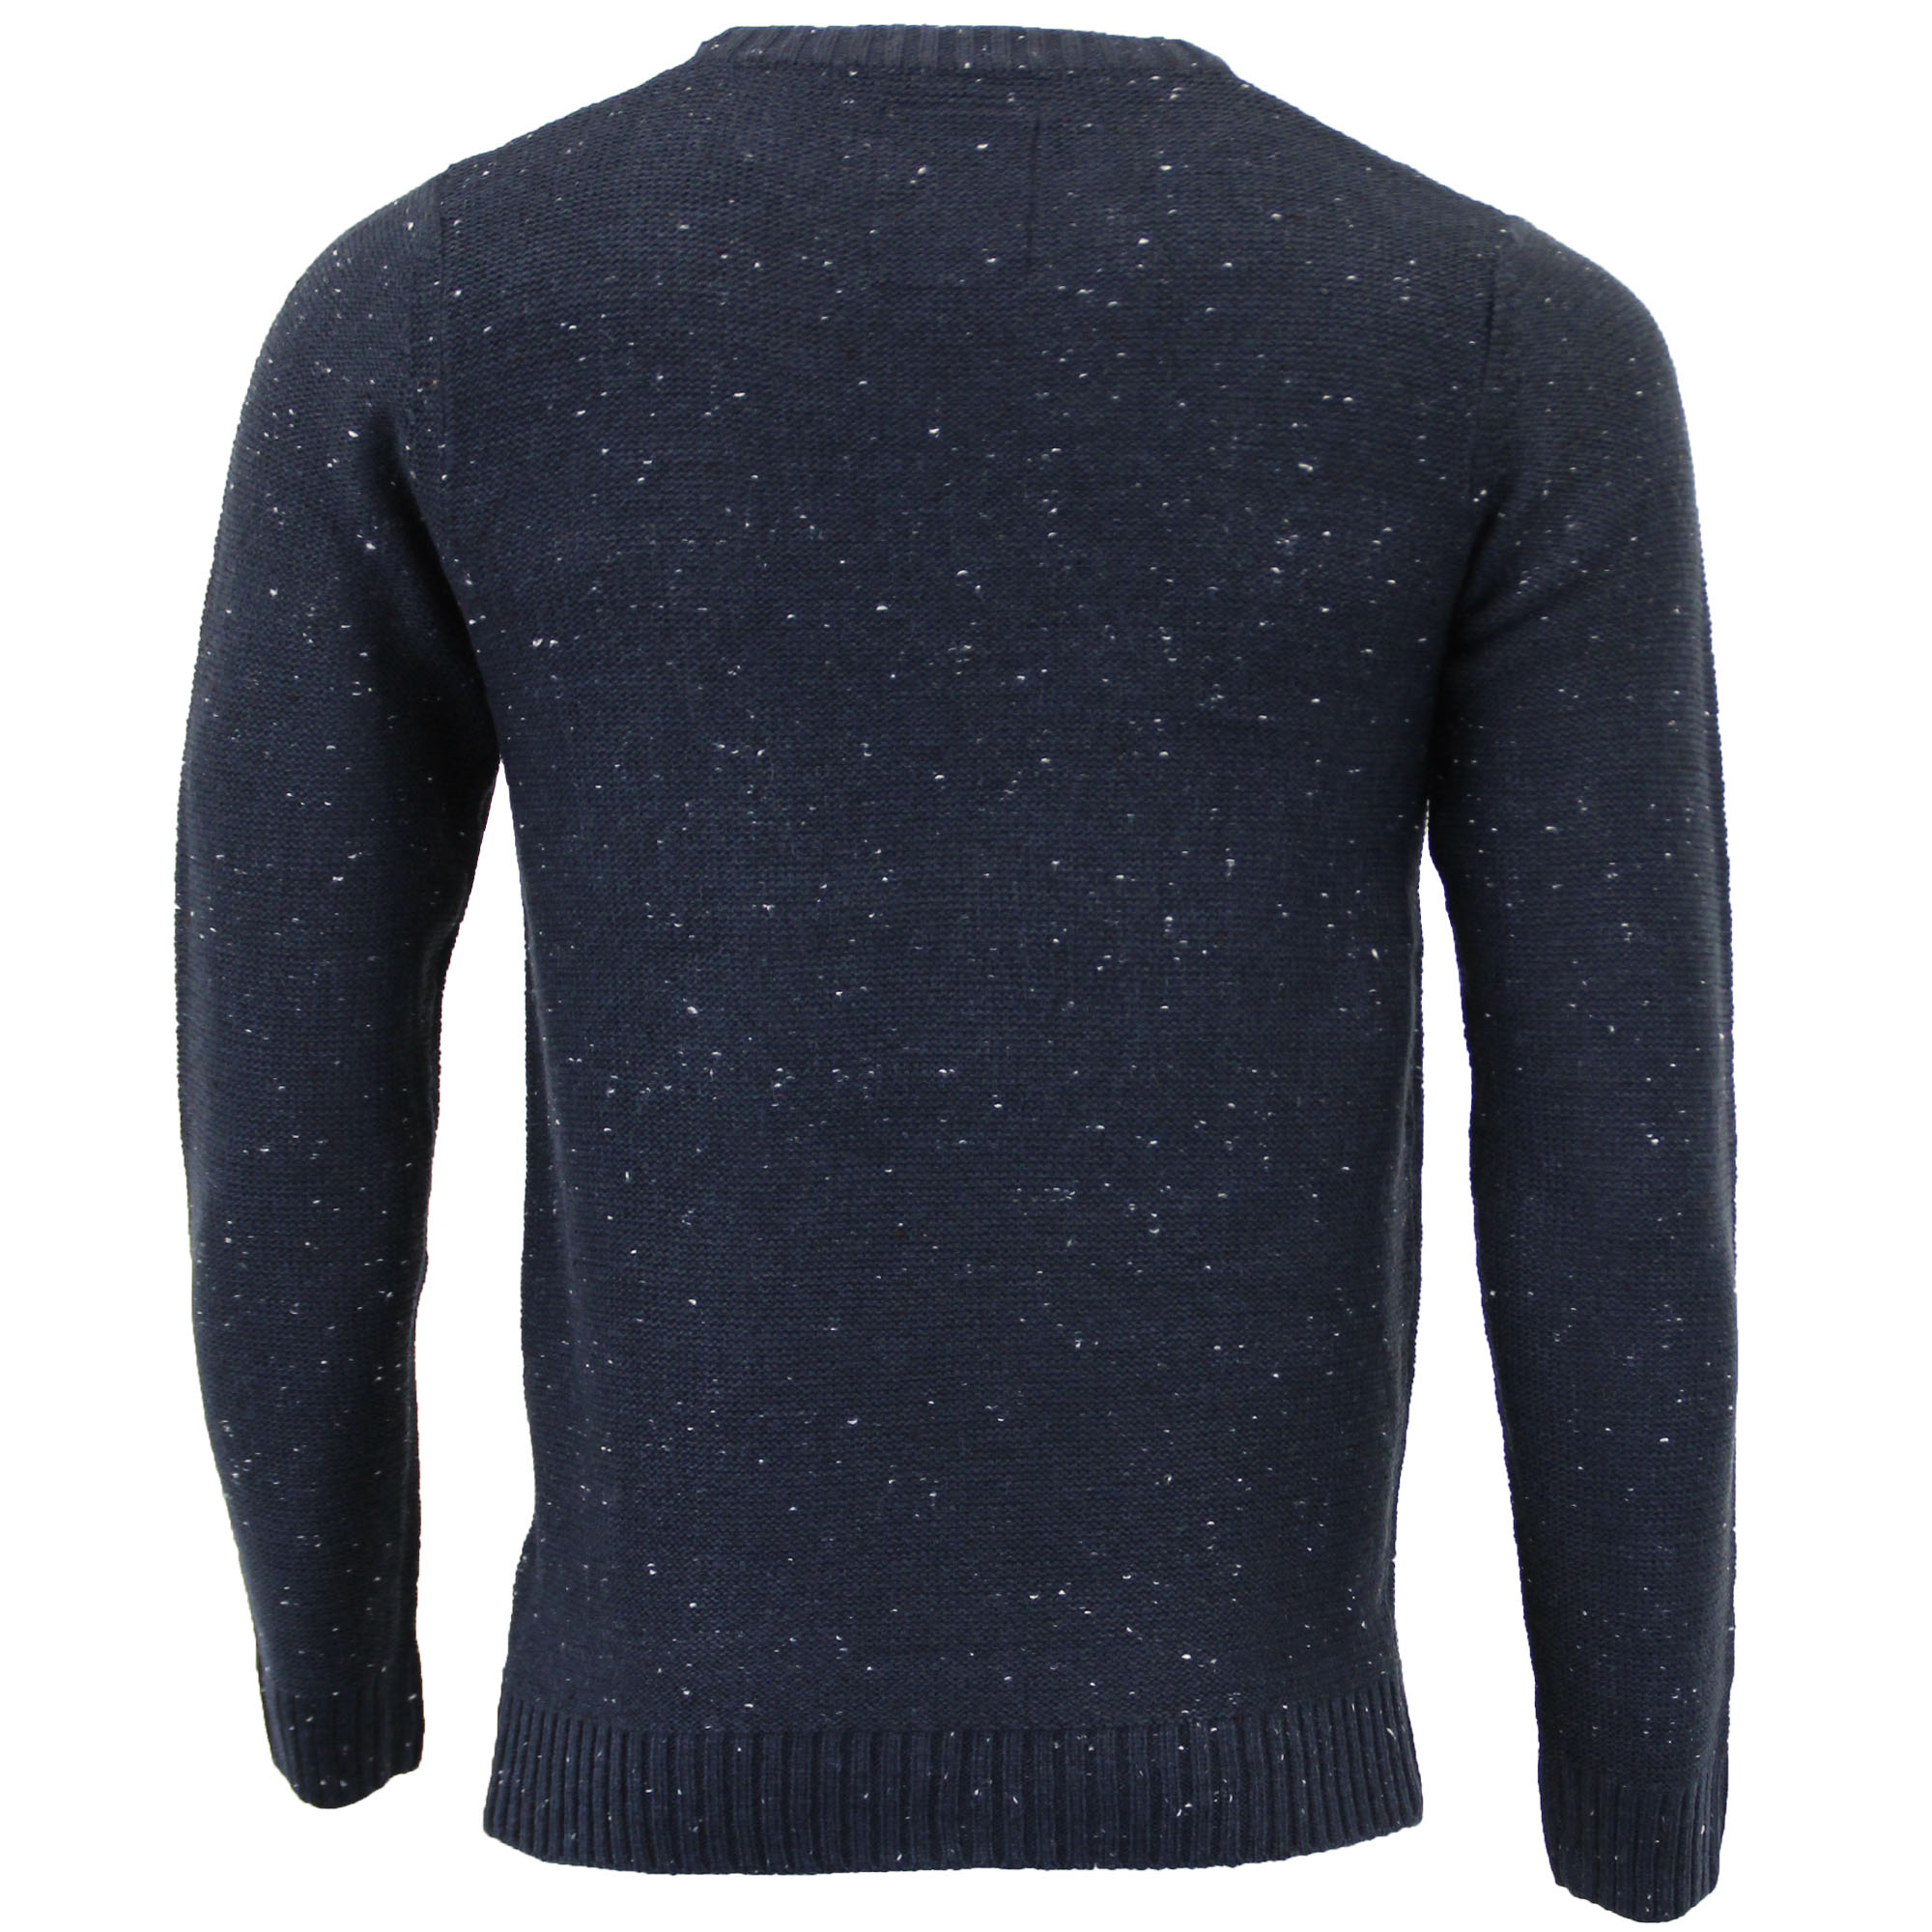 Mens-Wool-Mix-Jumper-Threadbare-Knitted-Sweater-Pullover-Top-Chunky-Zip-Winter thumbnail 30